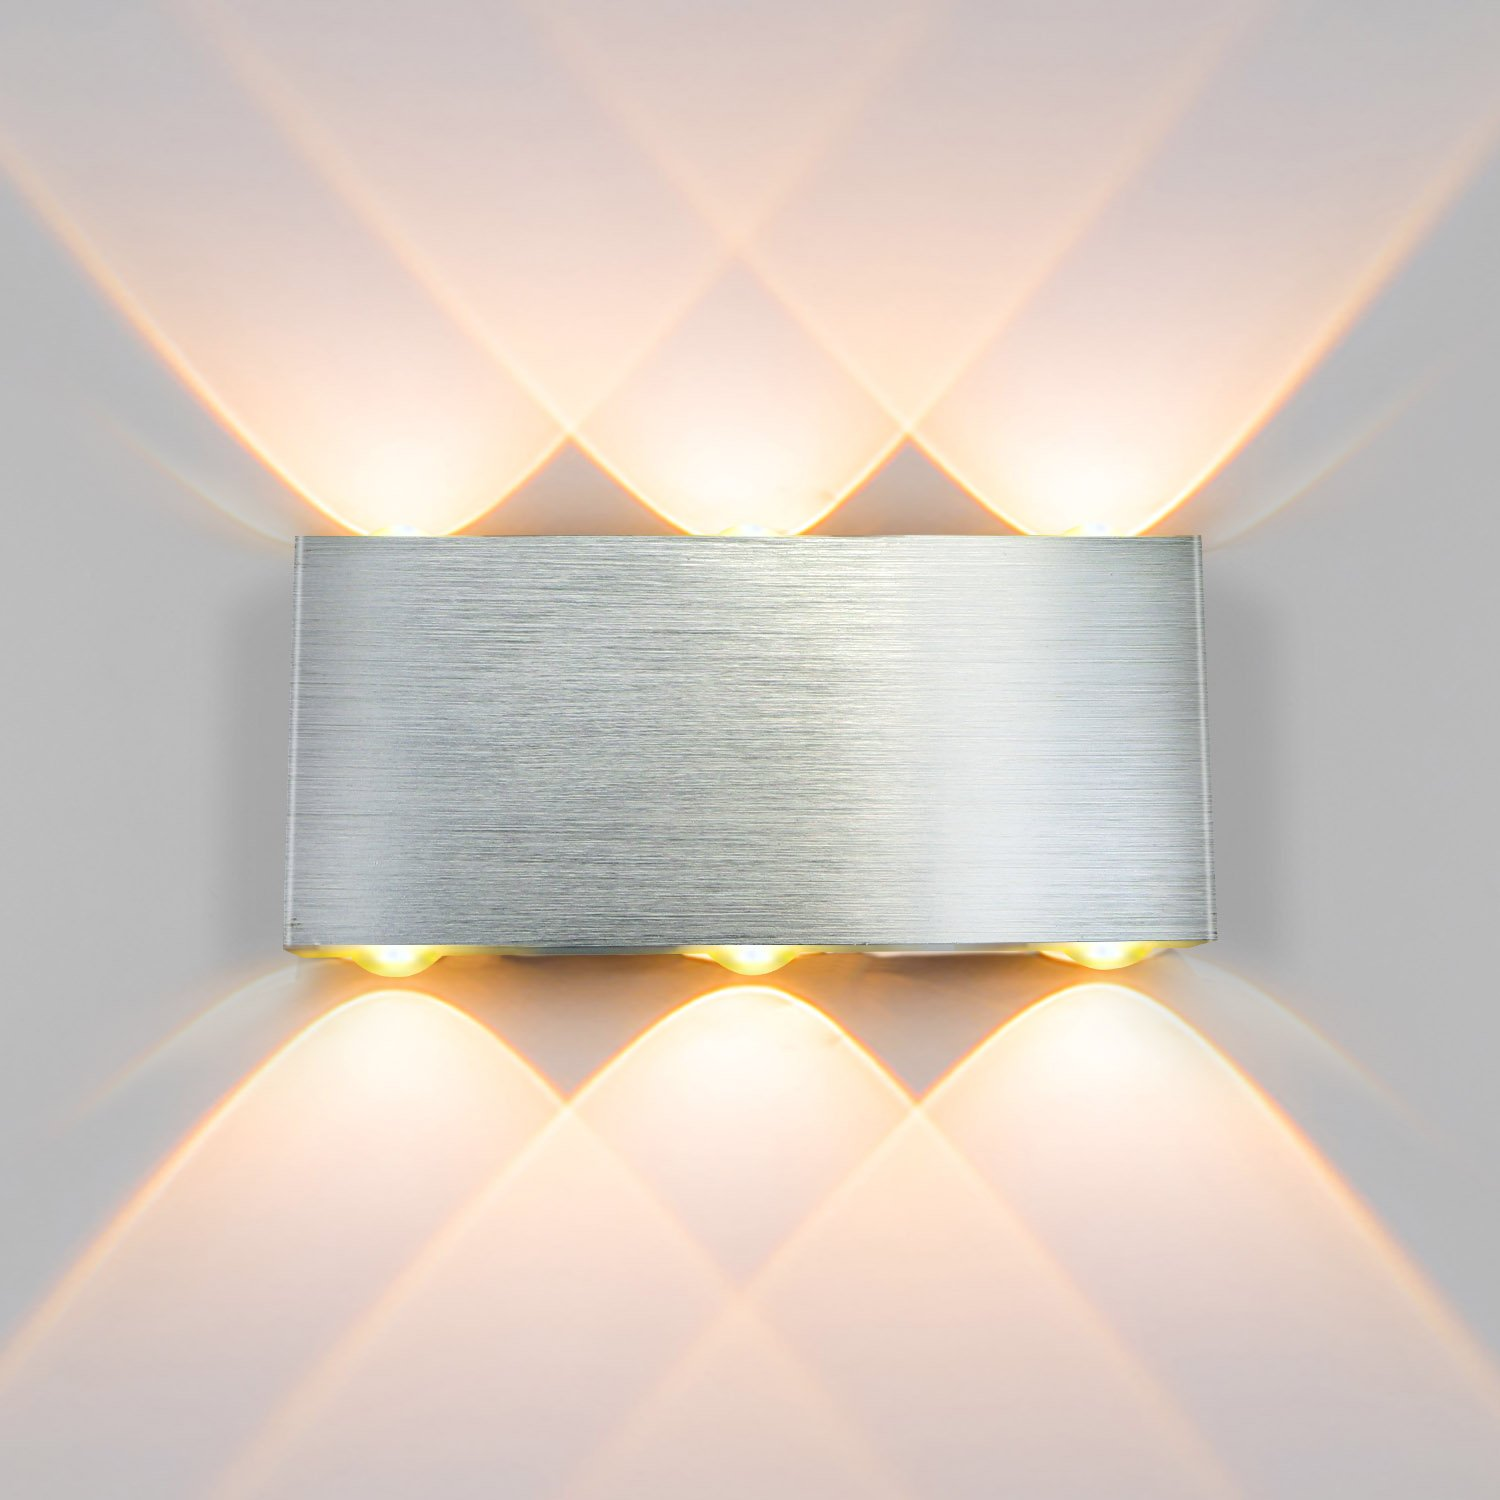 Estela LED Wall Lamp, 8W Dimmable LED Aluminum Waterproof Wall Mounted Lamp, Adjustable Outdoor Wall Light, 3000k Warm White Ruinuode Direct